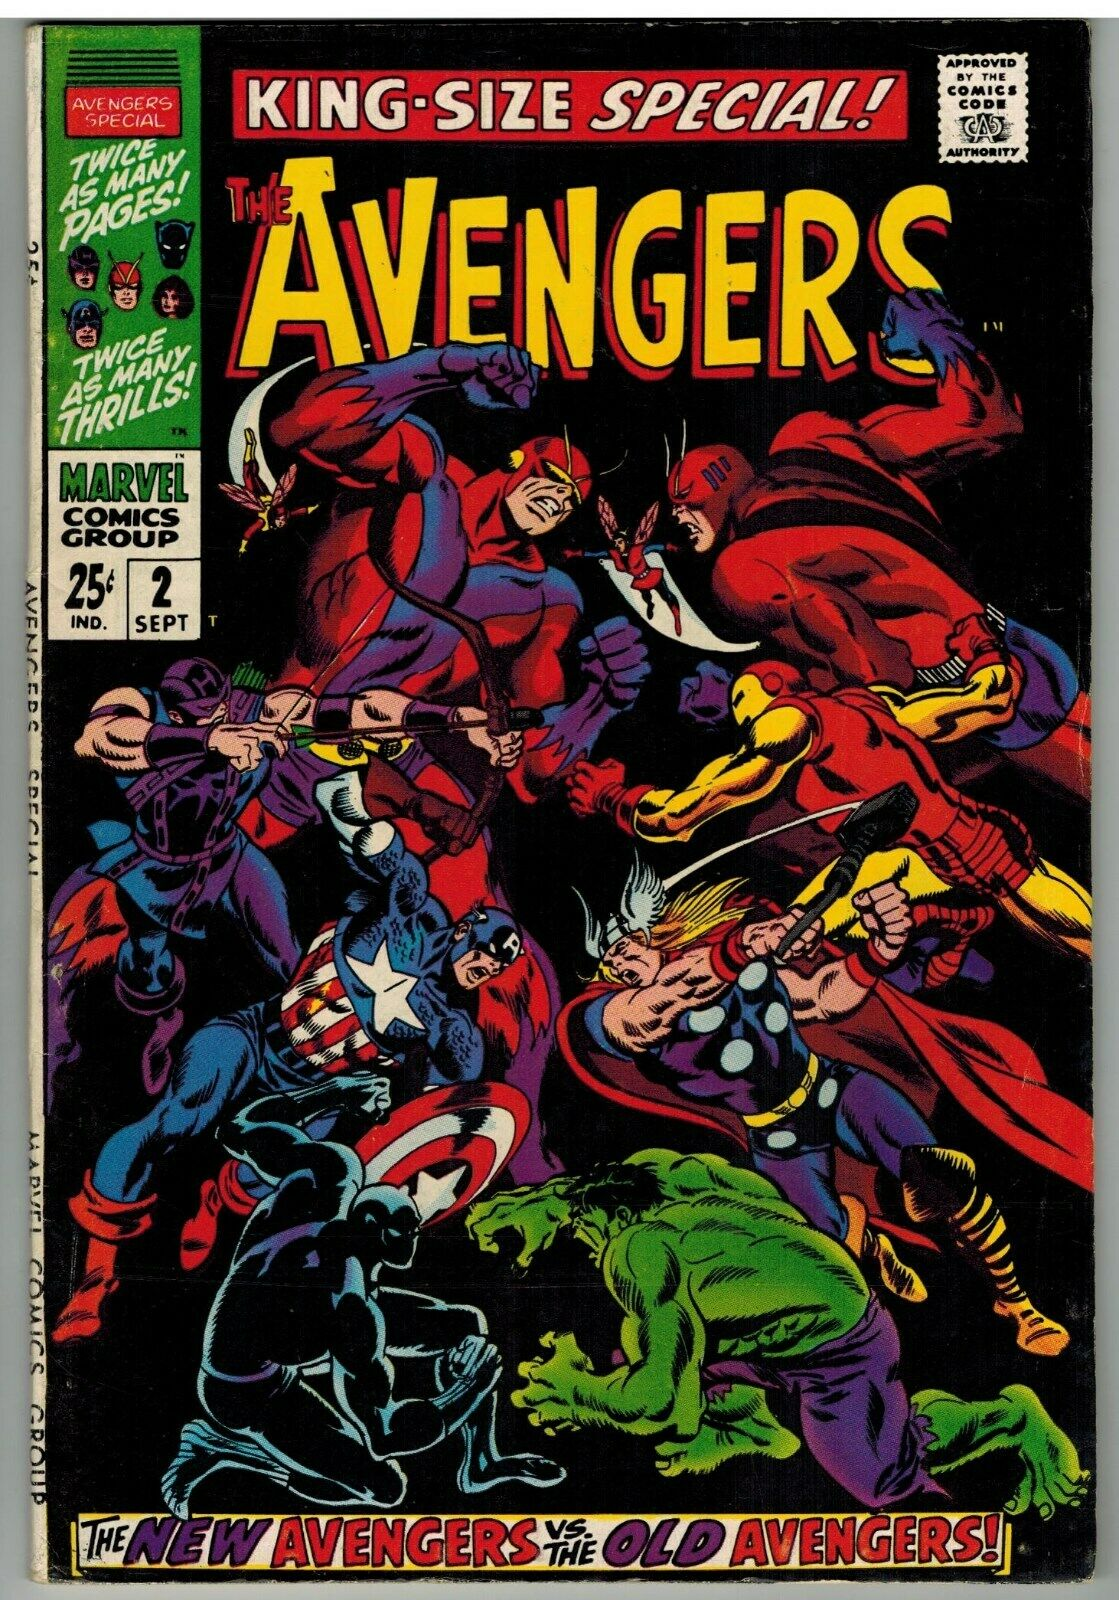 AVENGERS ANNUAL #2 1968 NEW AVENGERS VS OLD AVENGERS SILVER AGE GIANT 68 PAGES